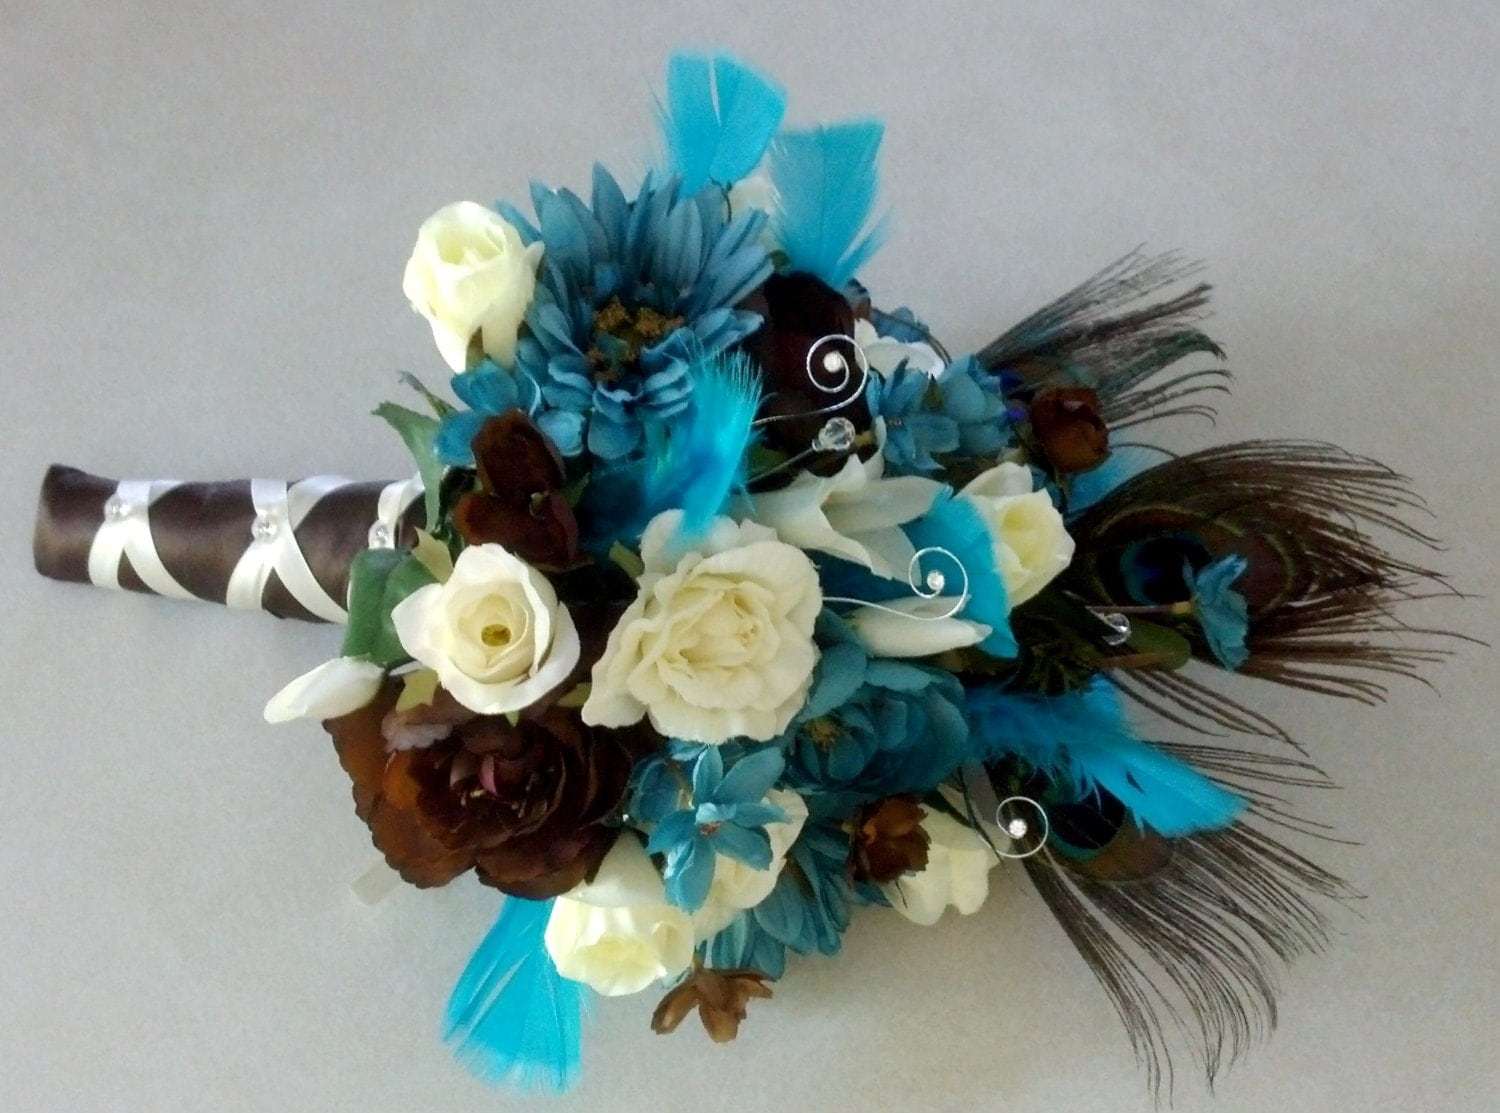 Peacock Destination Wedding Flowers Turquoise Teal Blue Brown